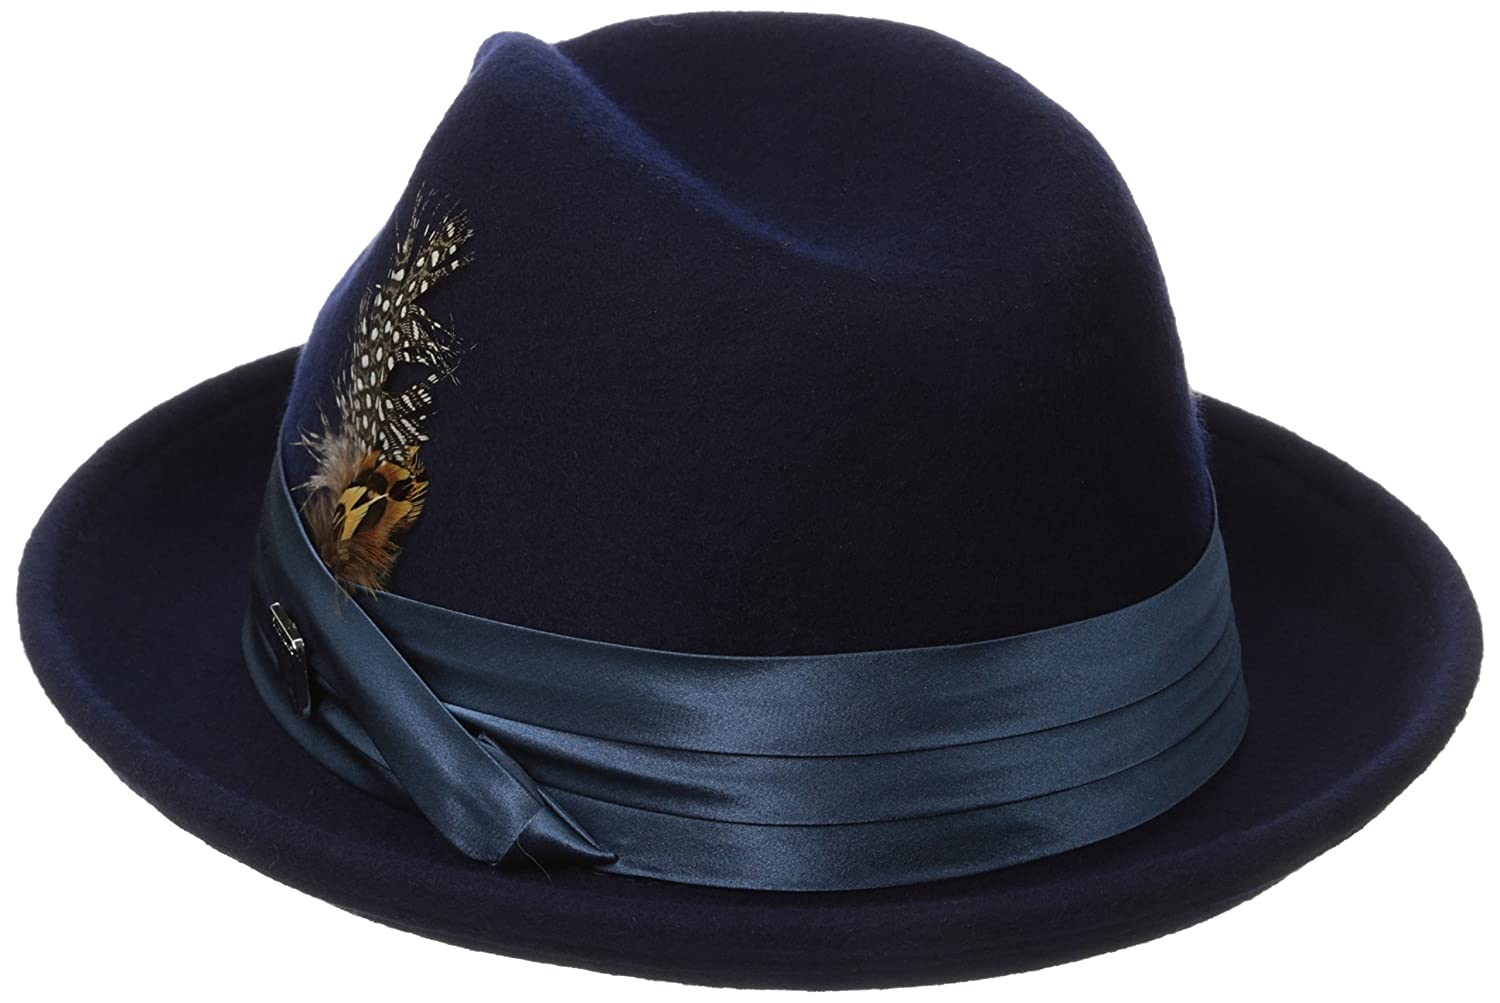 57f6abf53940a Stacy Adams Men s Crushable Wool Felt Snap Brim Fedora Hat at Amazon Men s  Clothing store